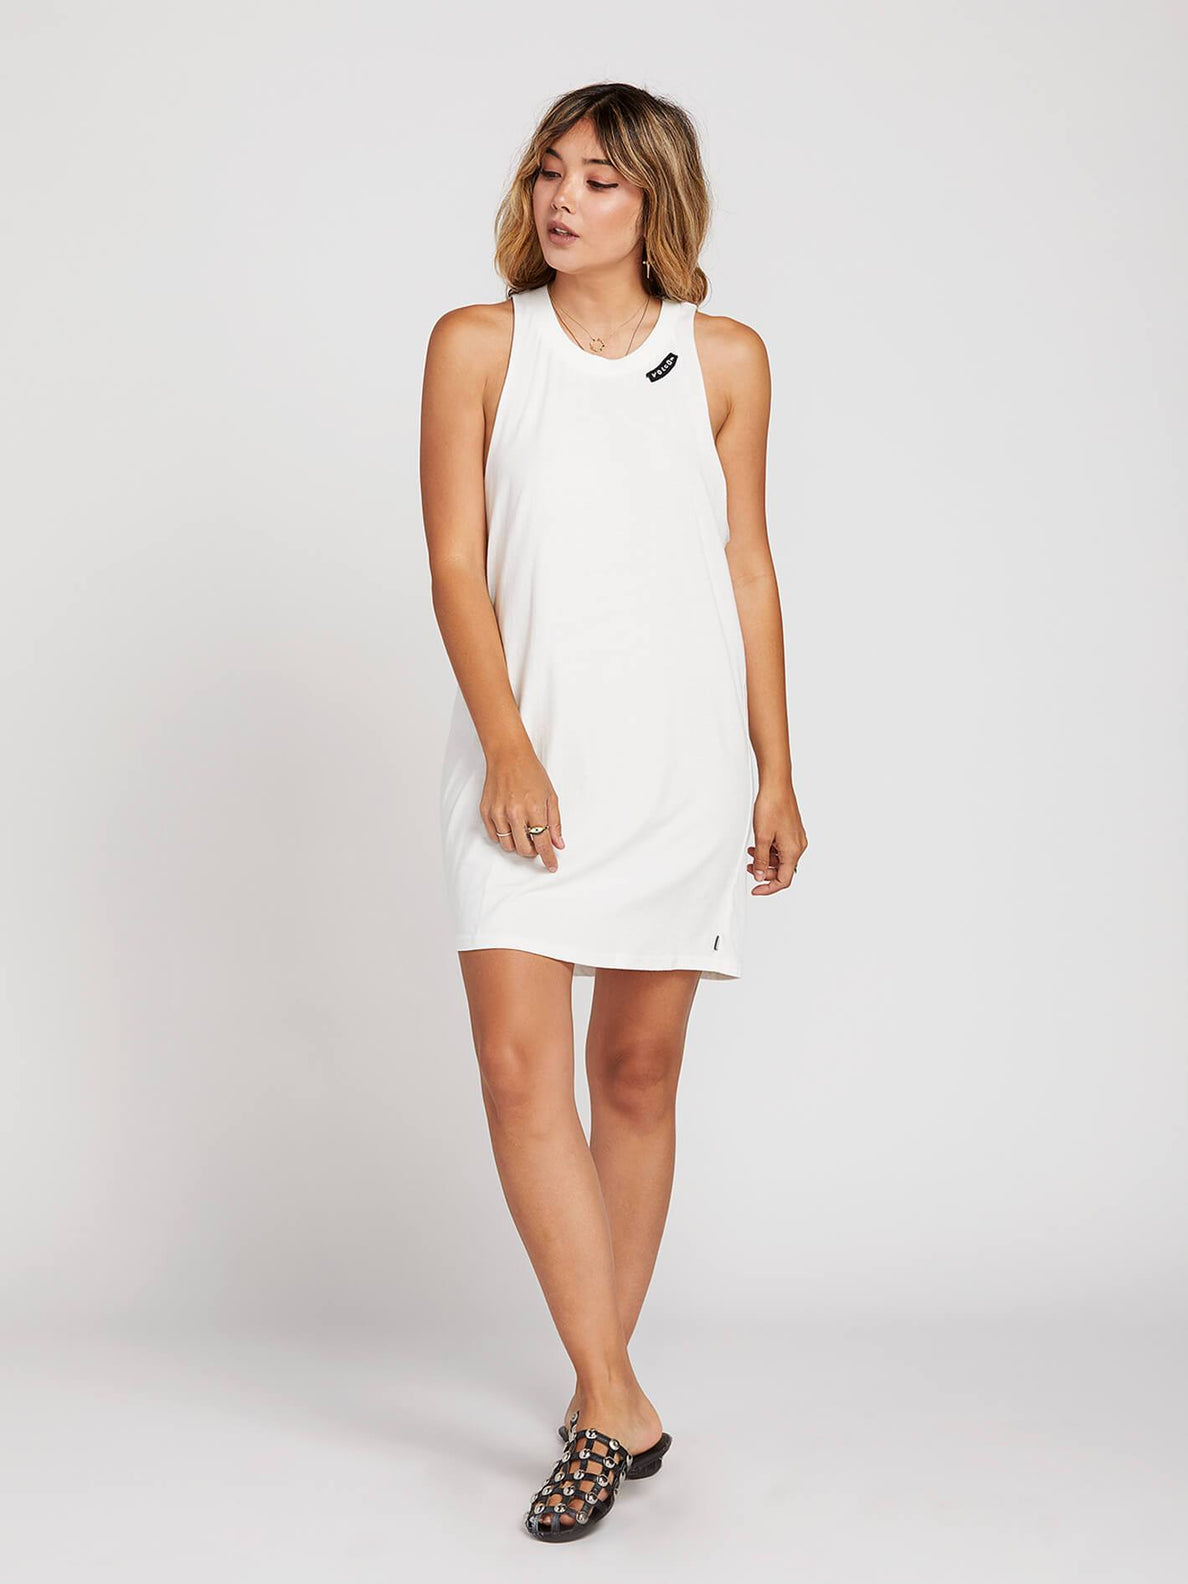 Day By Day Dress In White, Front View